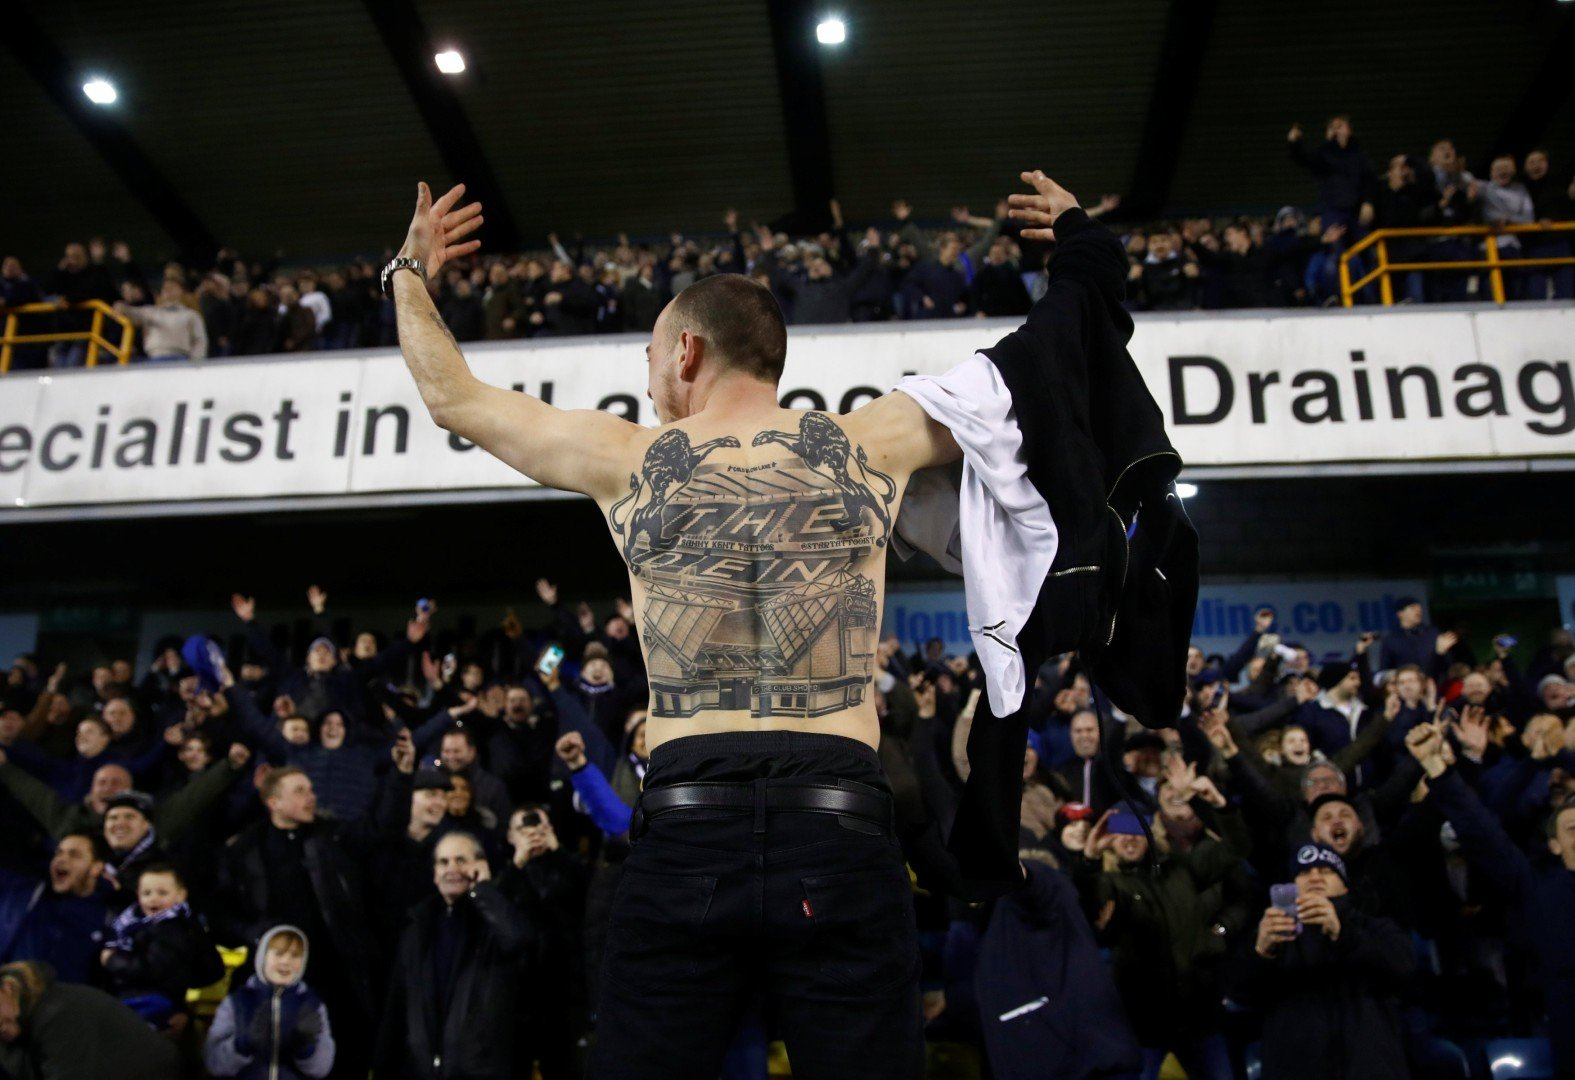 fbde010fb Millwall and Everton supporters fighting show football violence has died  down